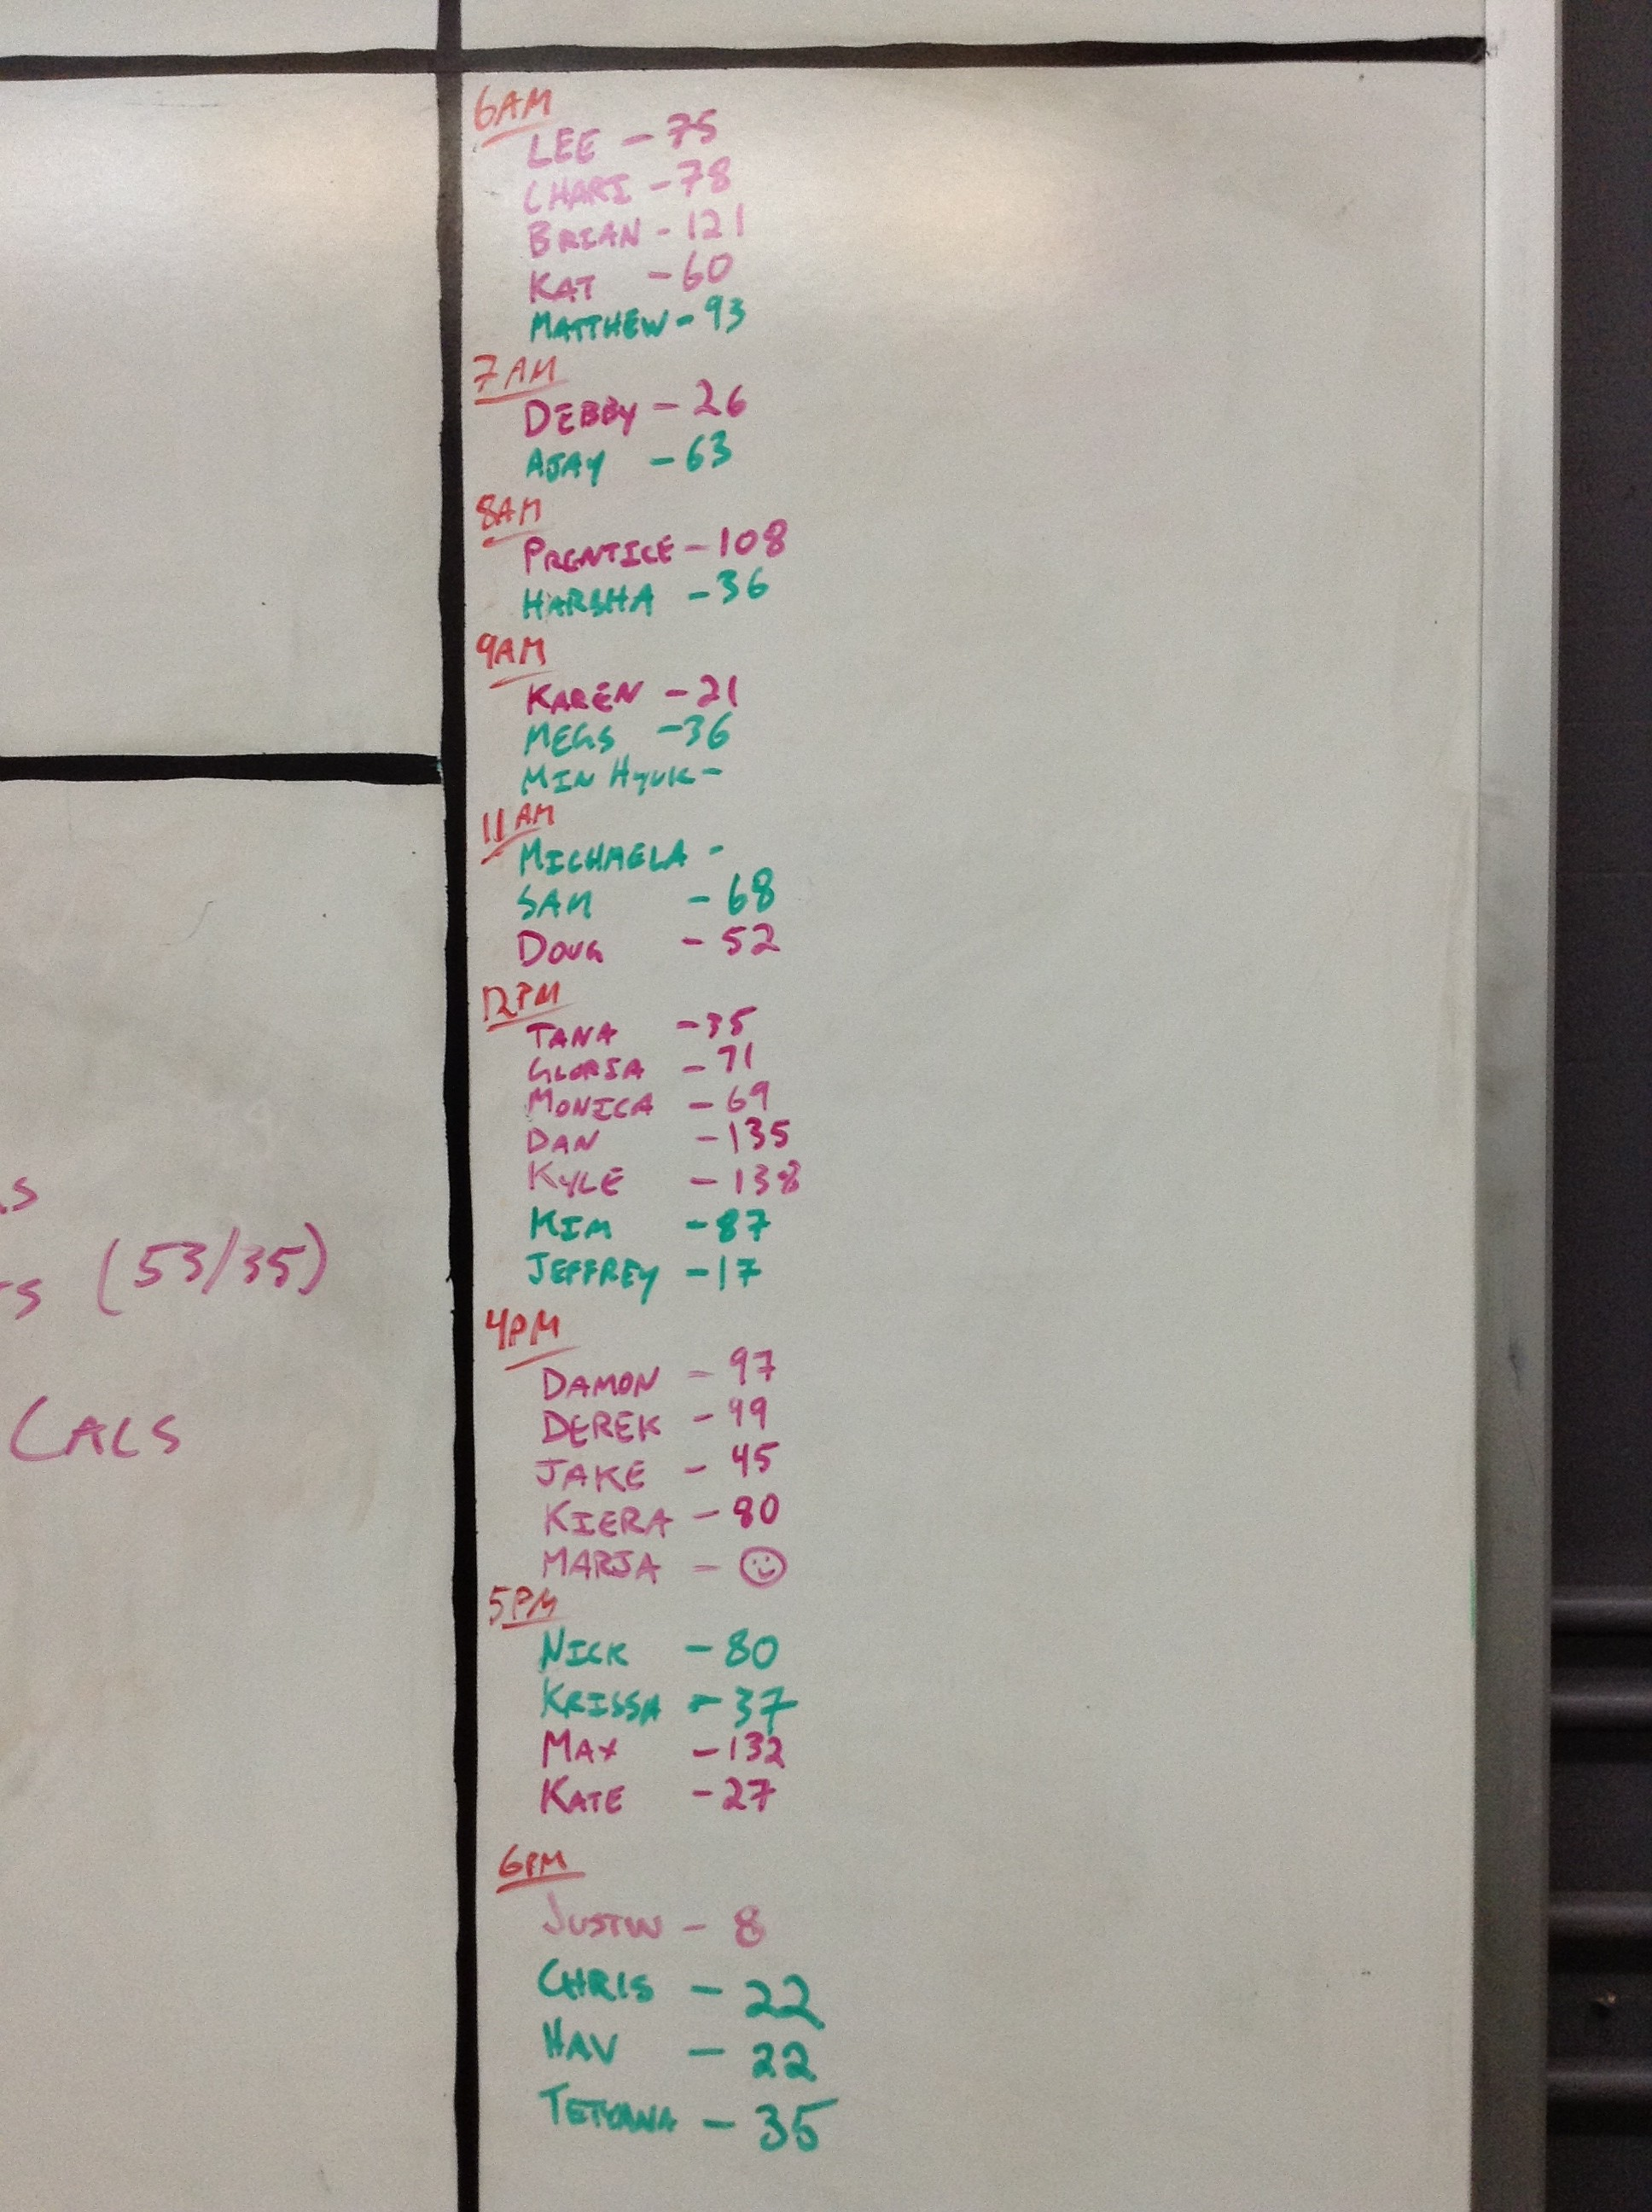 July 22 WOD Results